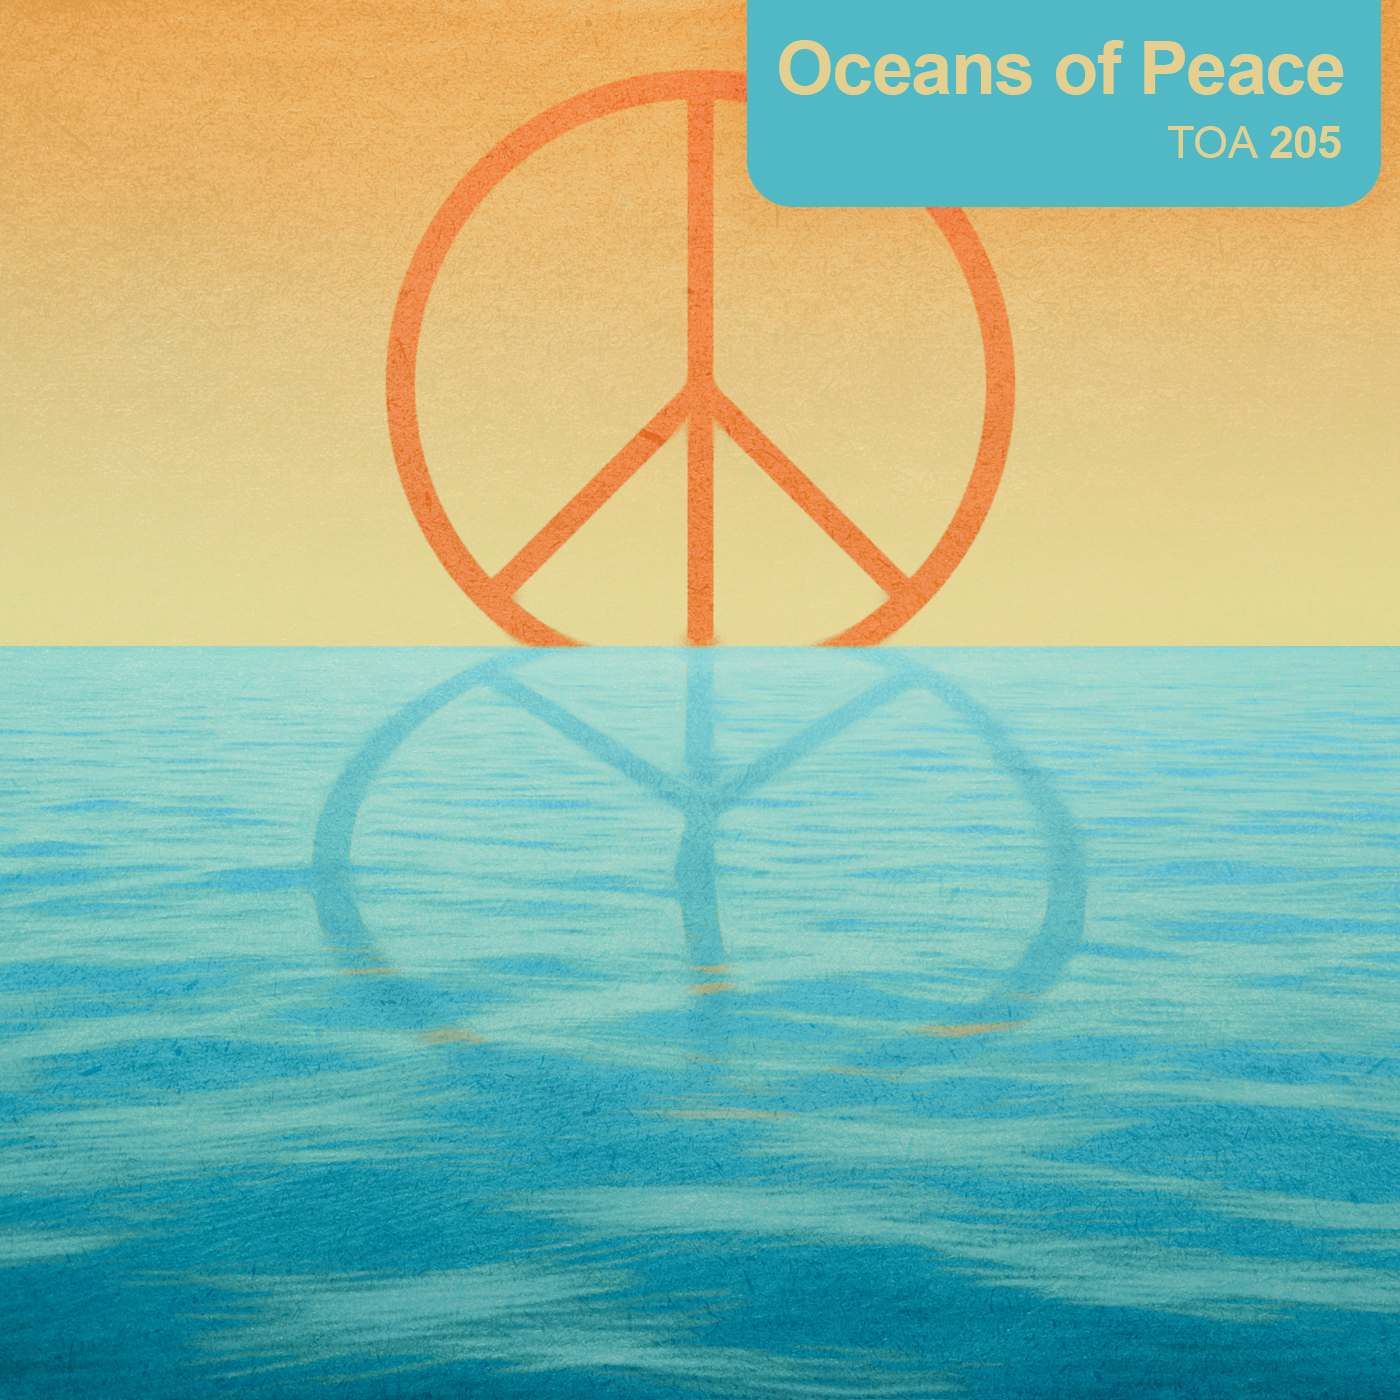 Oceans of Peace